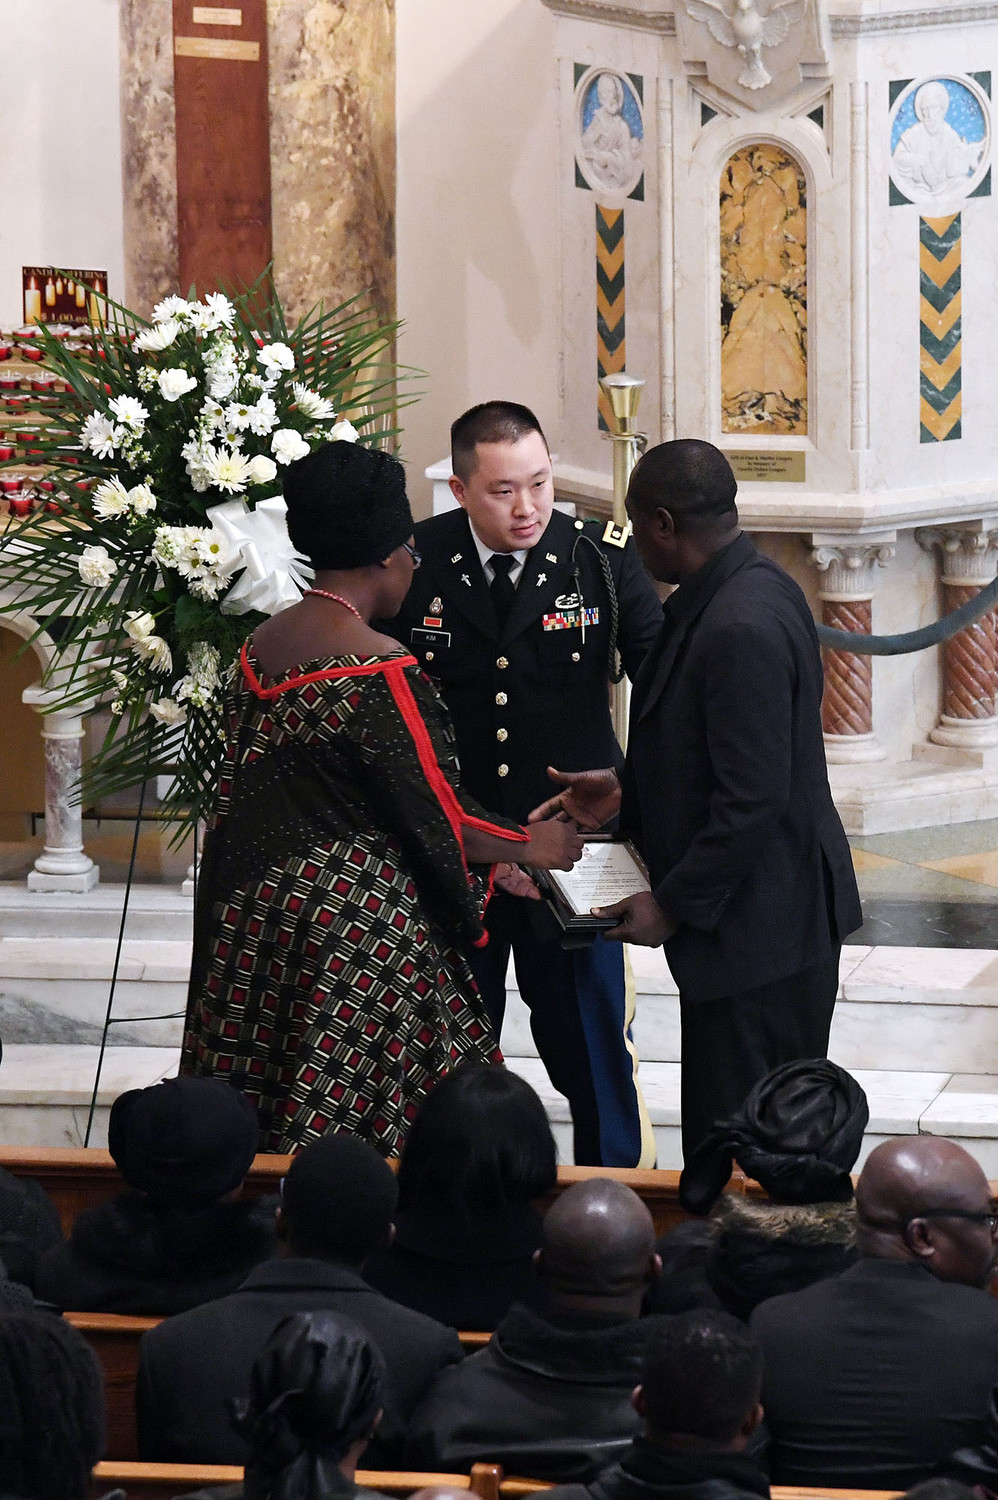 Army Maj. James Kim, a chaplain, top right, speaks with the fallen soldier's father, Kwabena Mensah, after a certificate was presented to him.